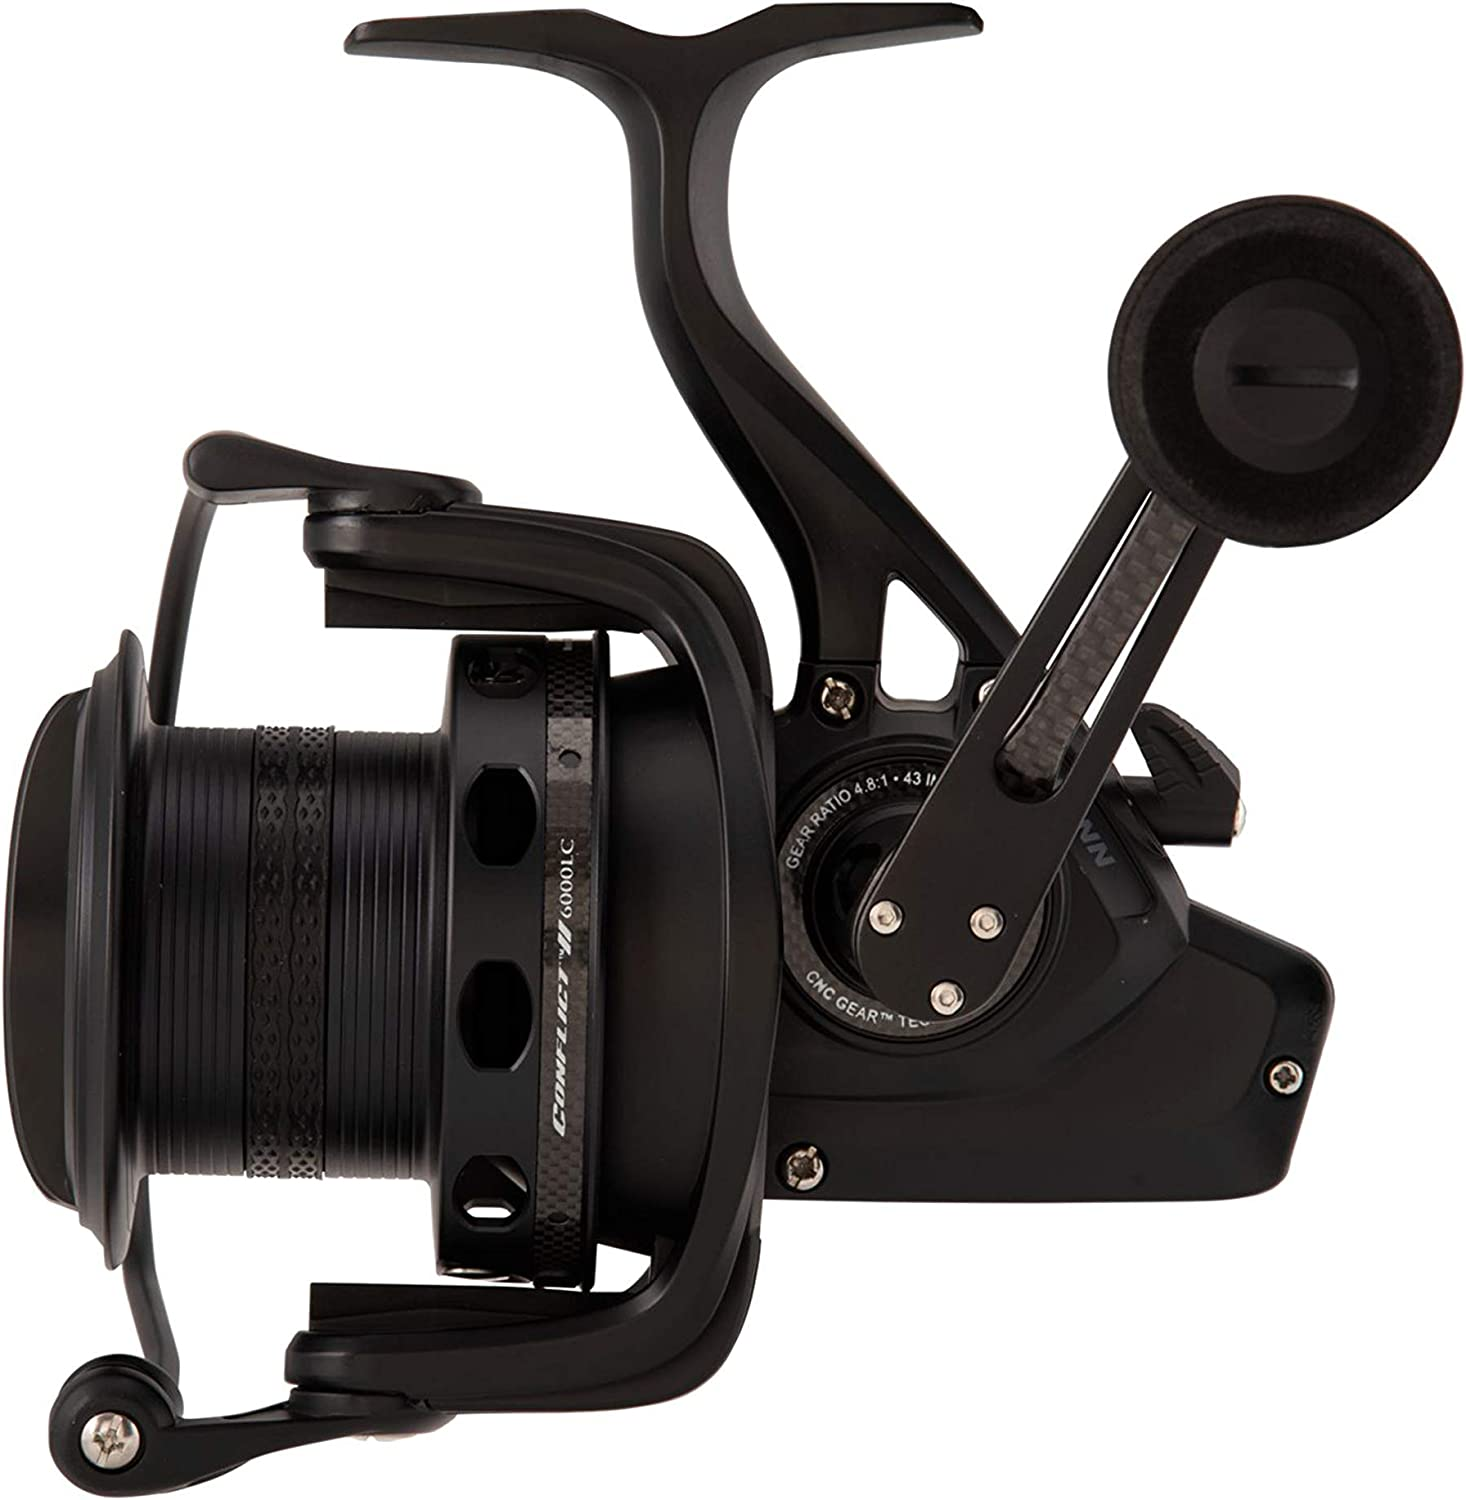 Penn CFTII 7000 LC Long Cast Spinning Reel